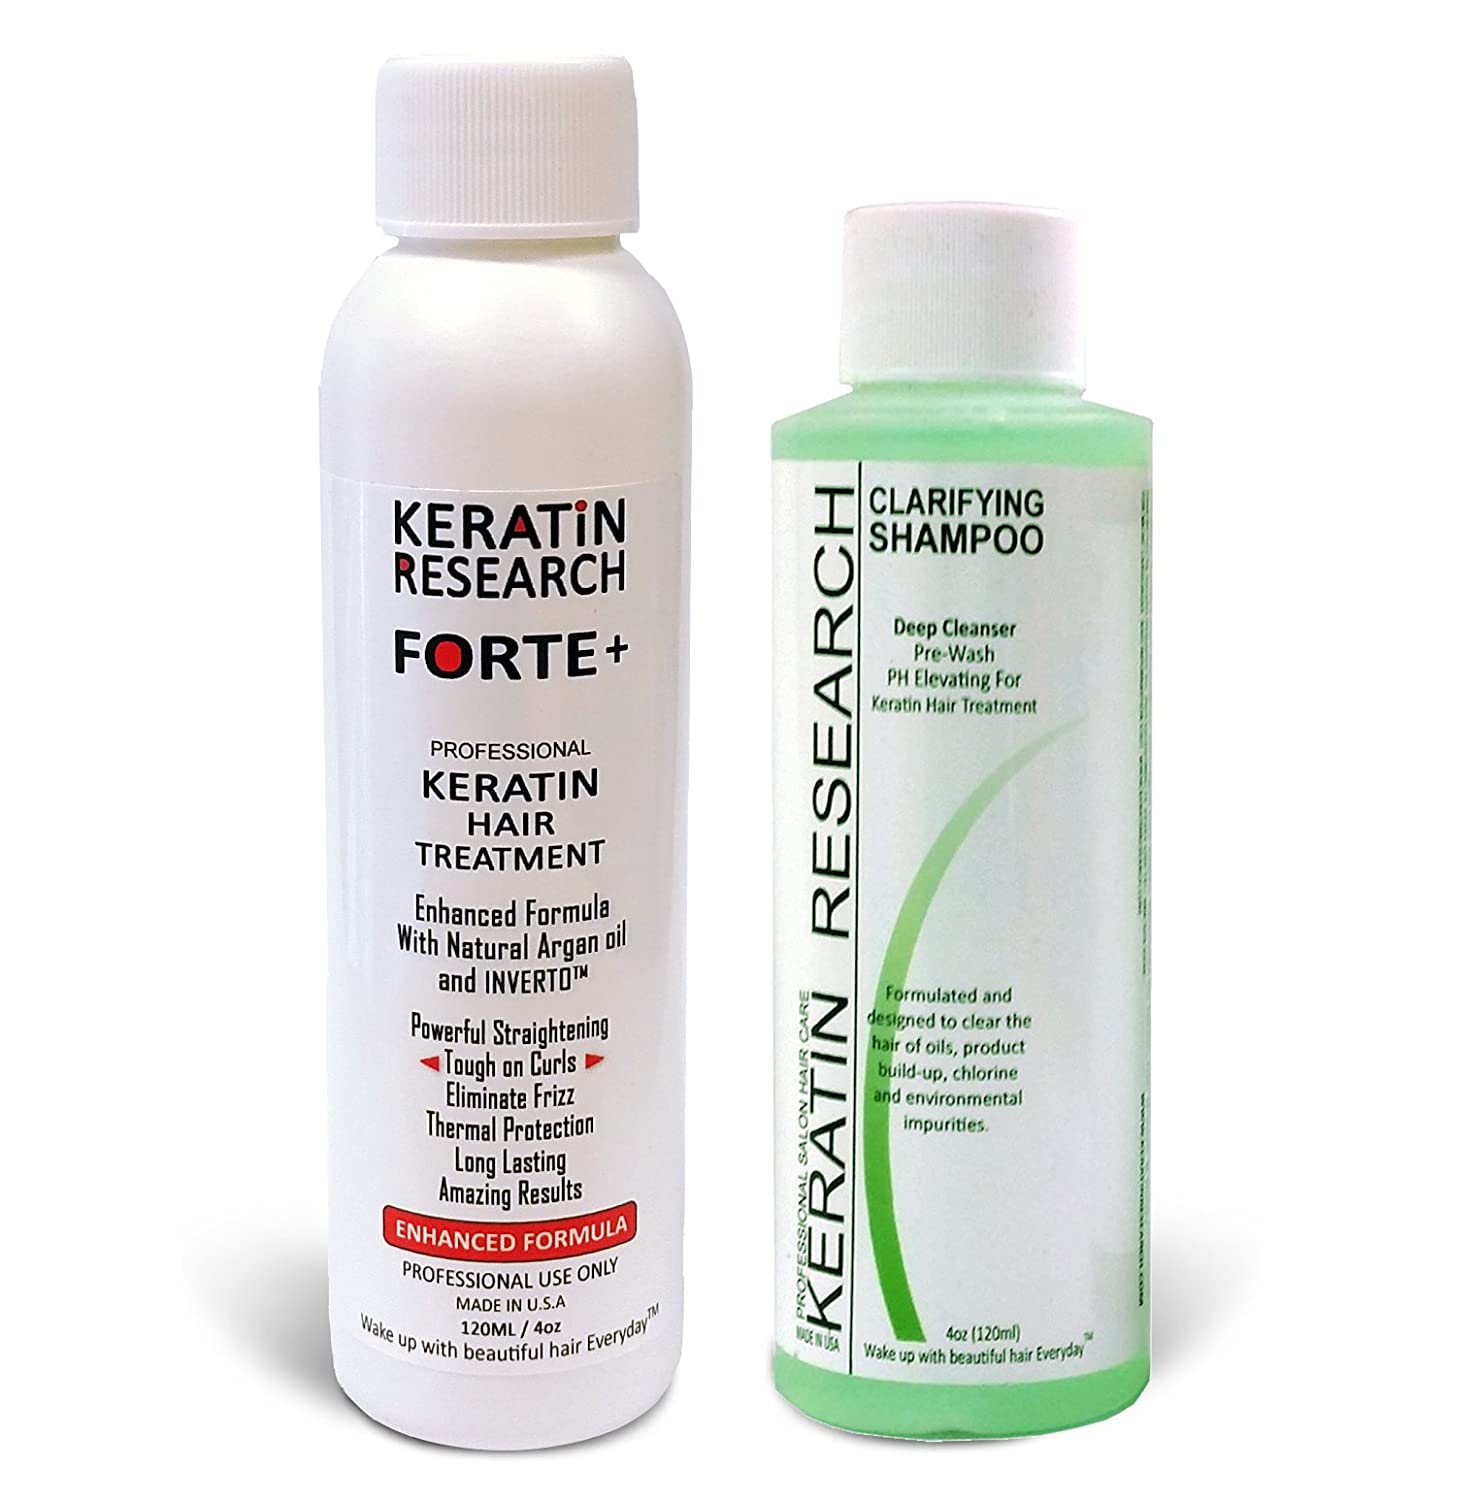 Forte Plus Extra Strength Brazilian Keratin Hair Treatment Professional 120ml Bottle with 120ml Clarifying Shampoo Proven Amazing Results